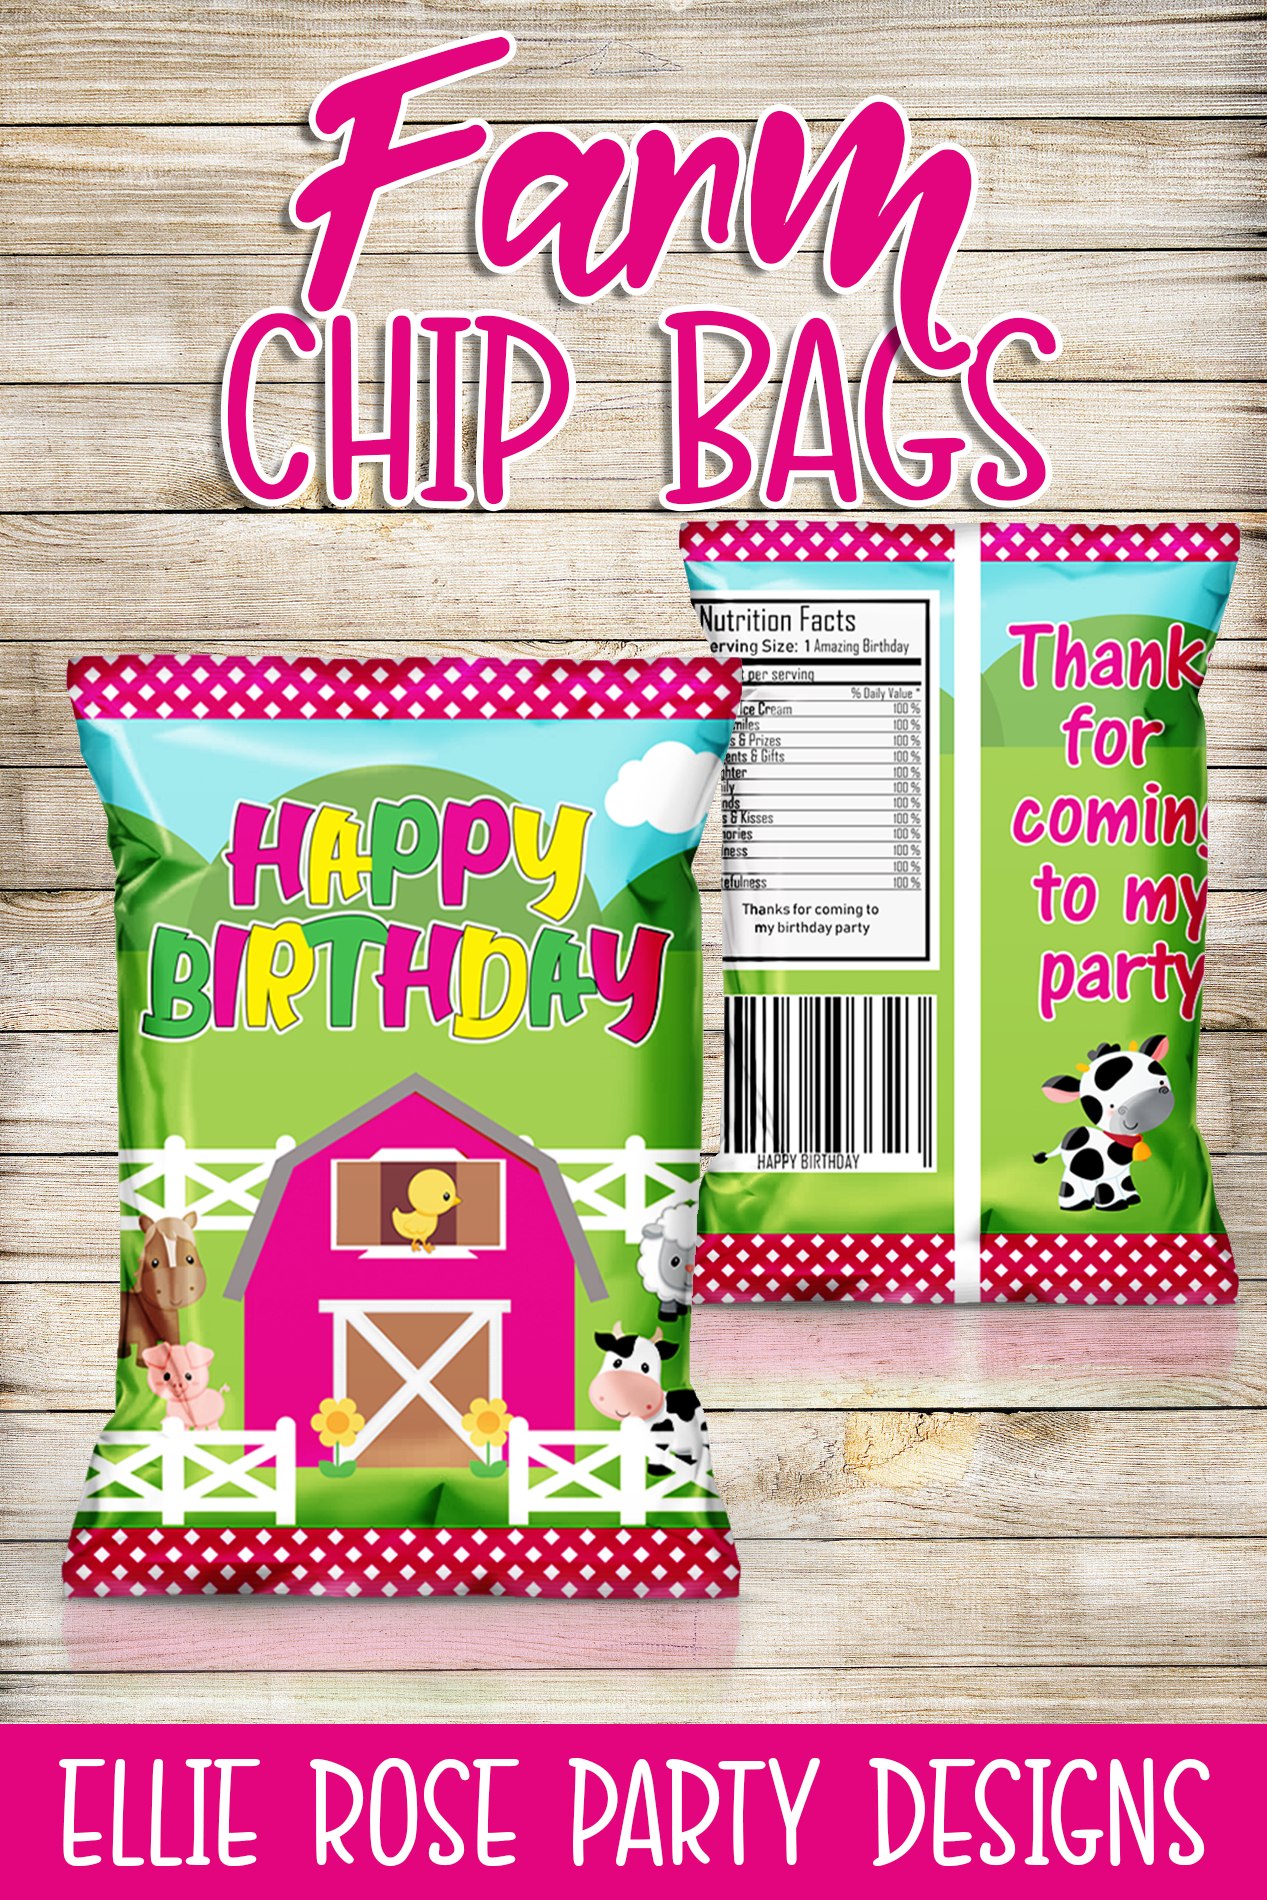 PINK FARM BARNYARD FARMHOUSE BIRTHDAY PARTY FAVOR CHIP BAGS